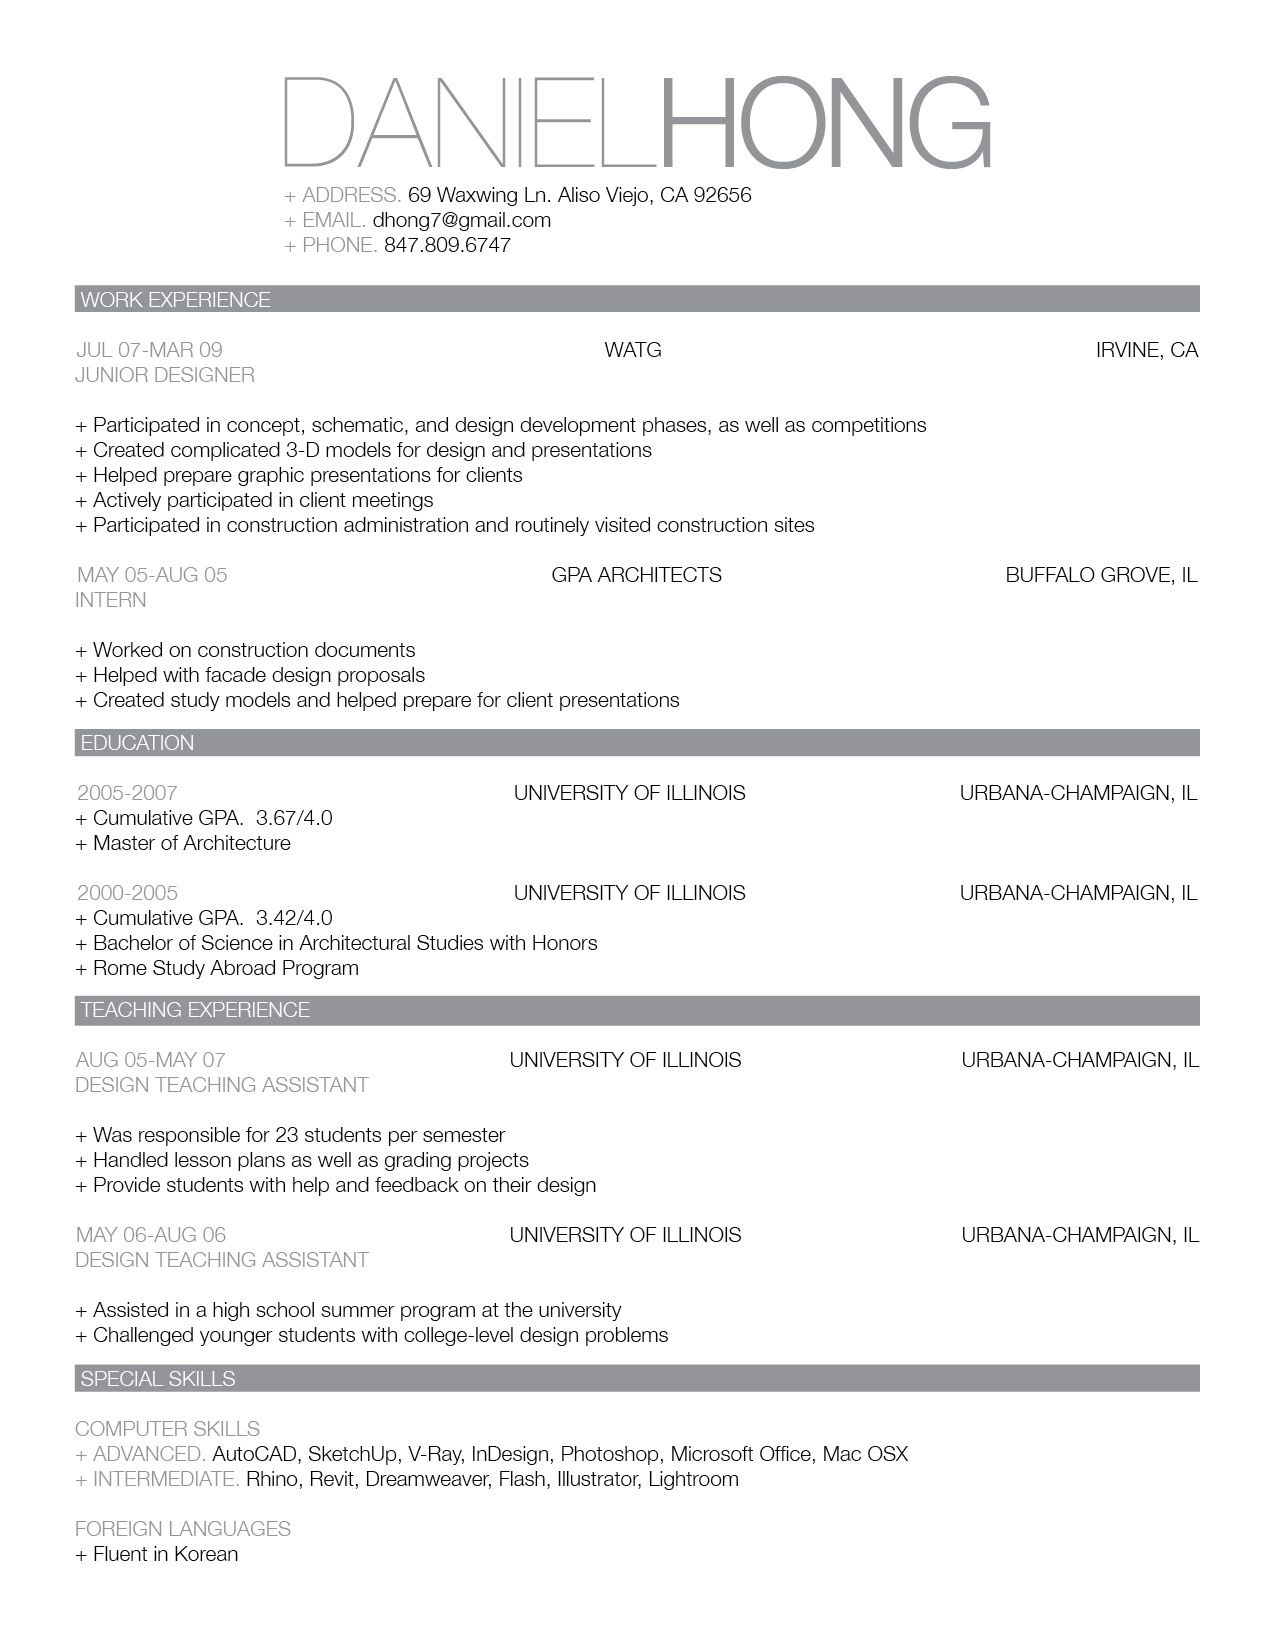 resume for work samples